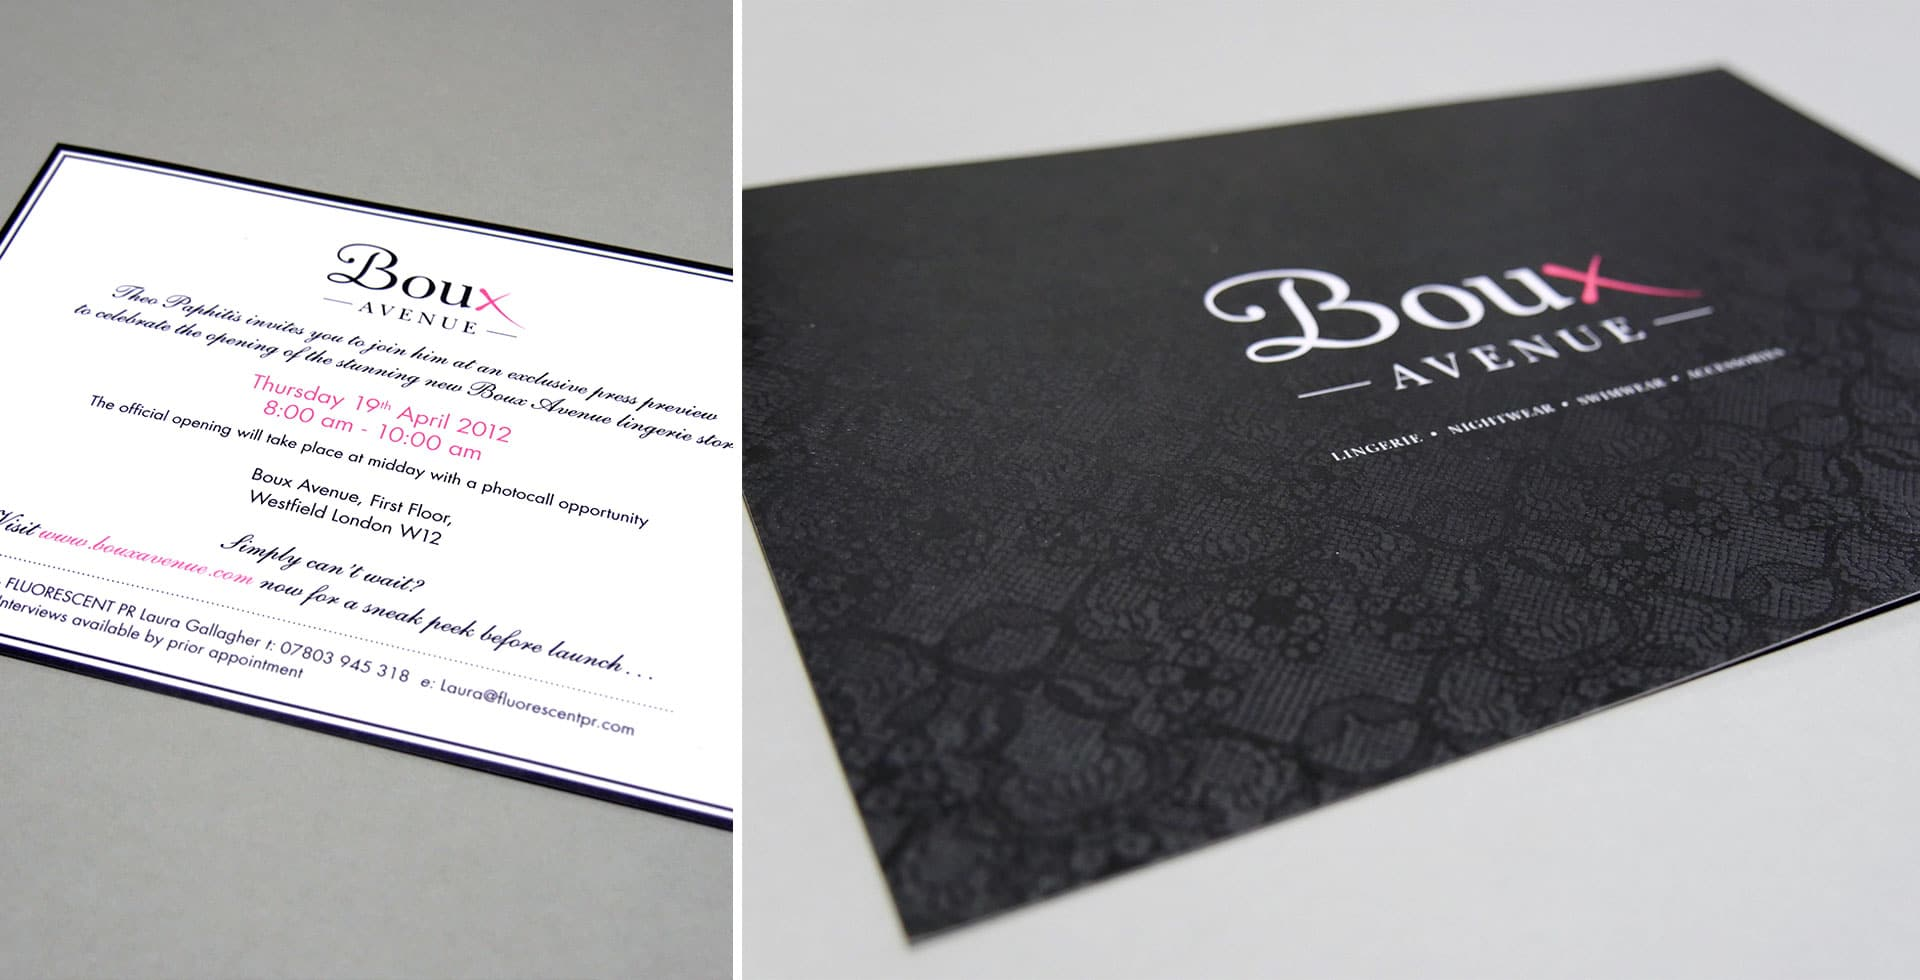 Boux Avenue Press Invite